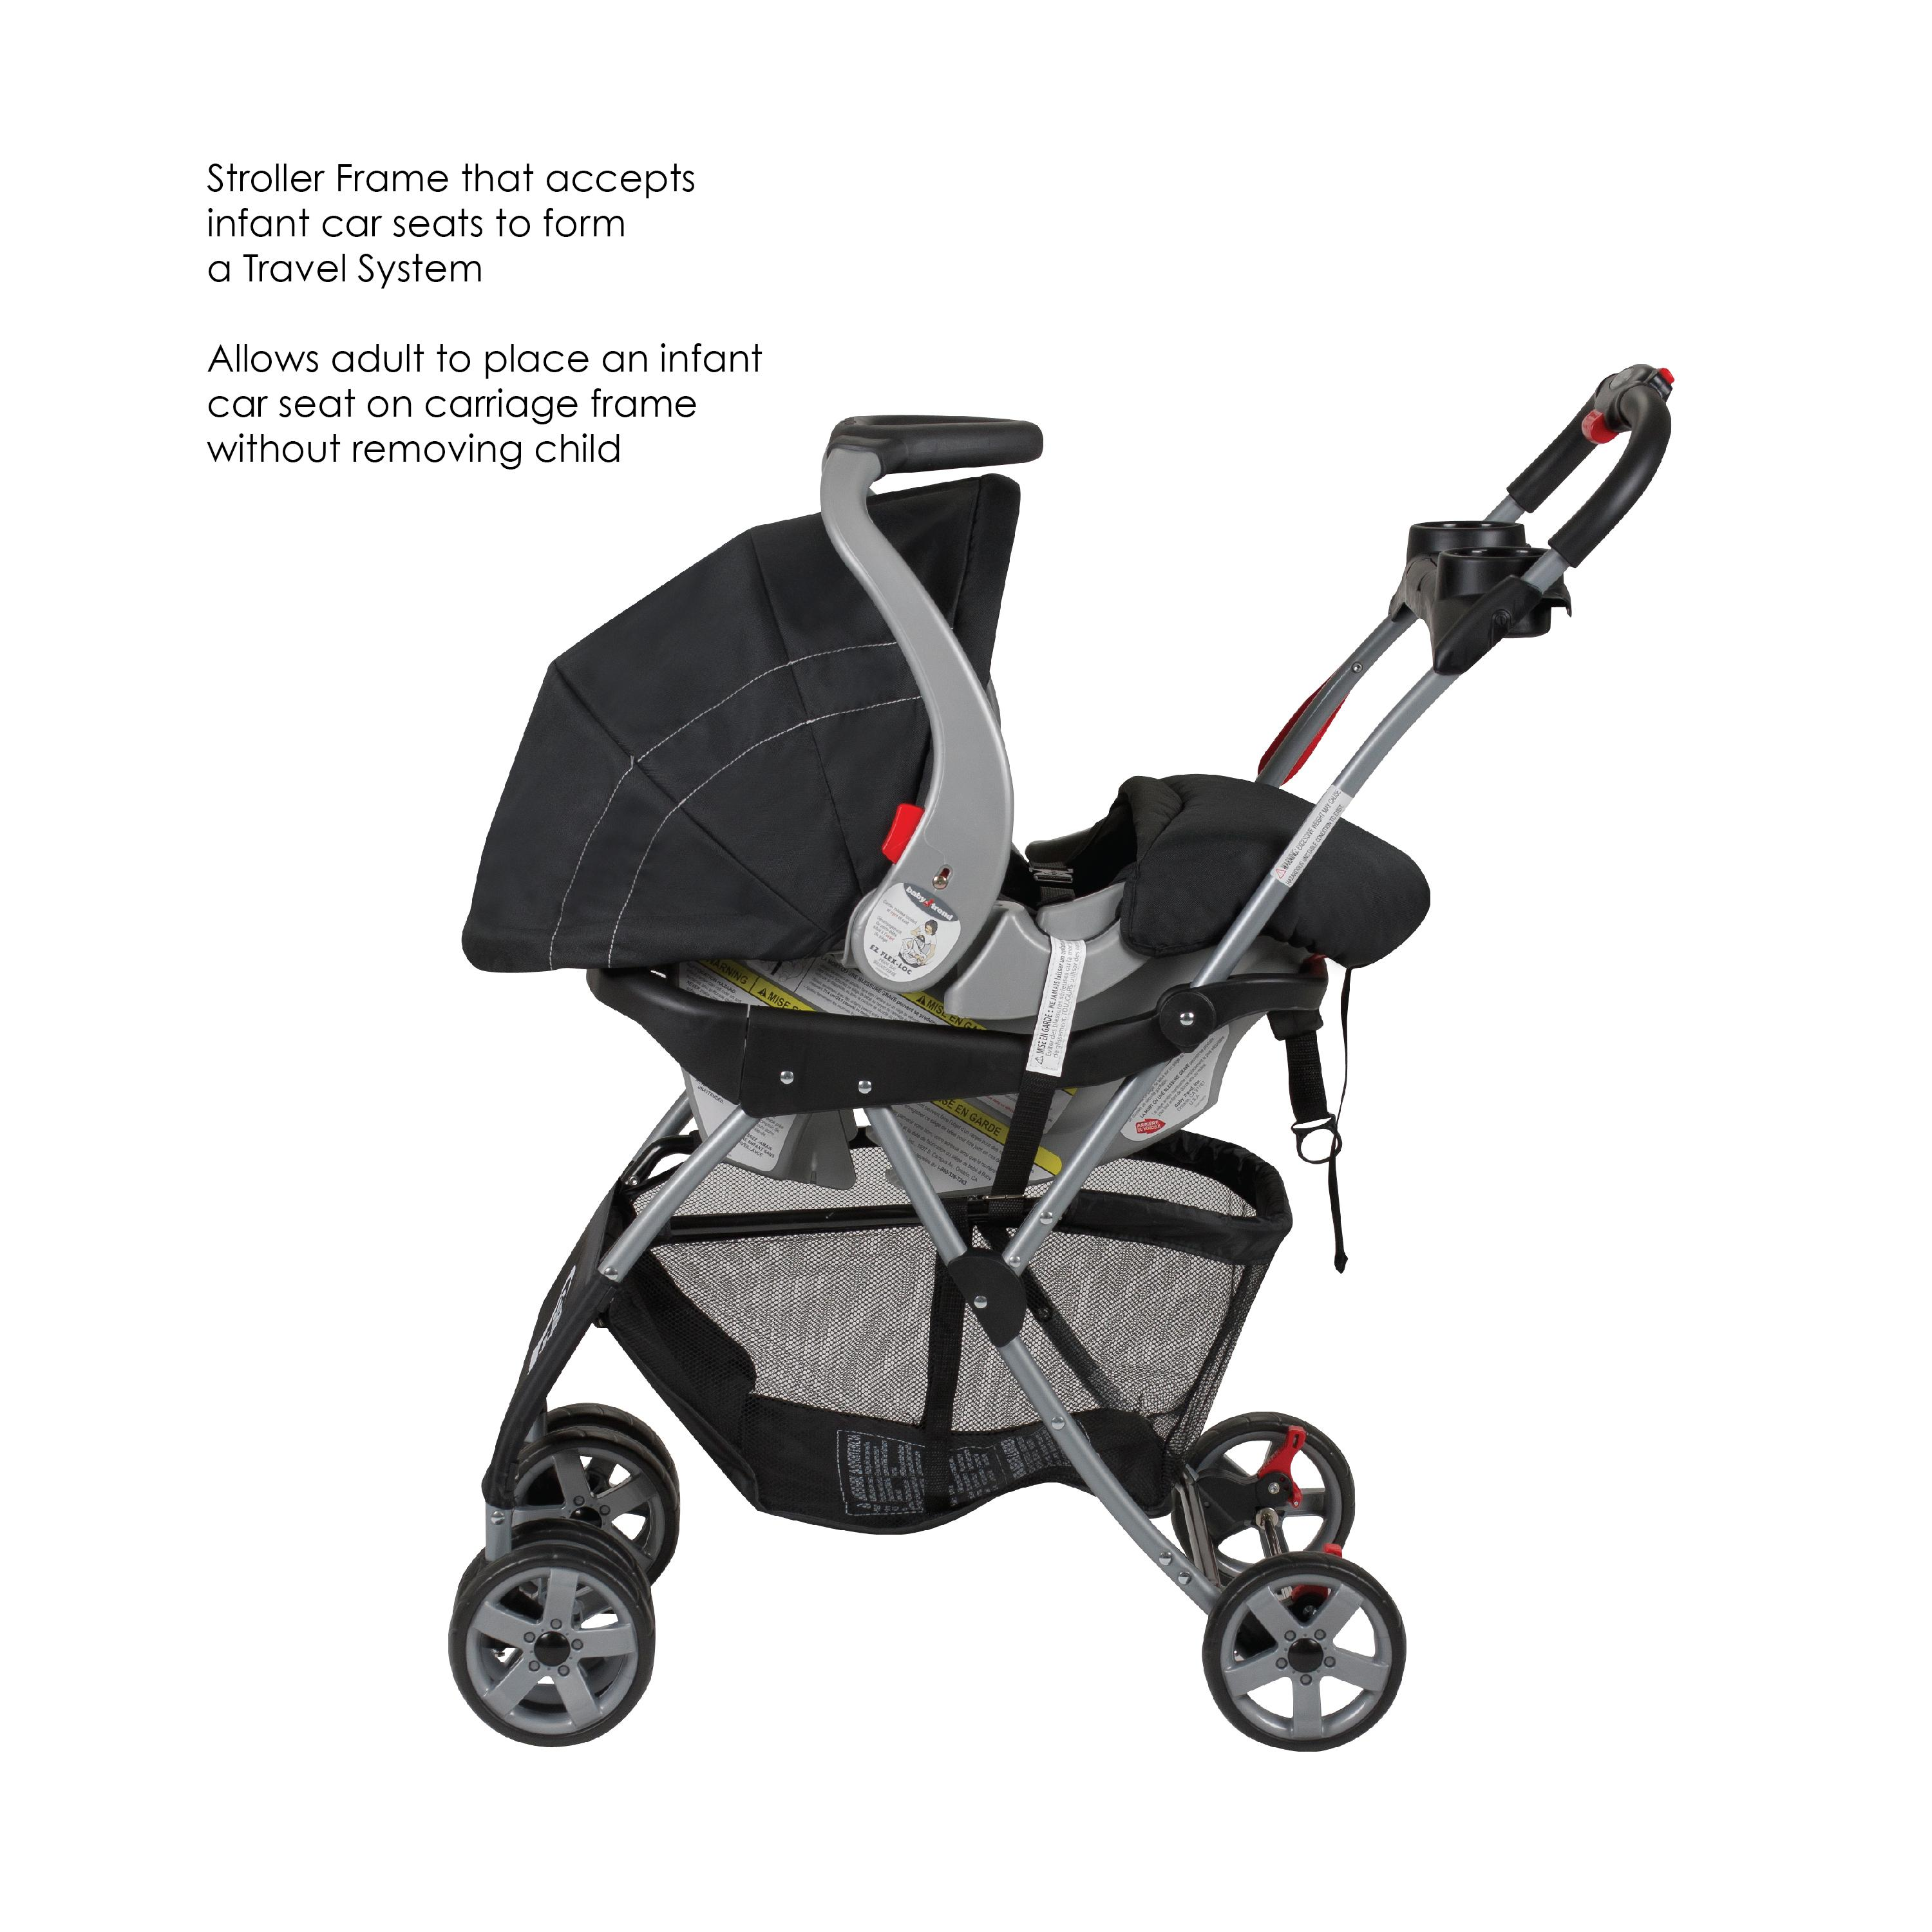 Baby Trend Double Snap N Go Stroller Frame Black Discontinued By Manufacturer